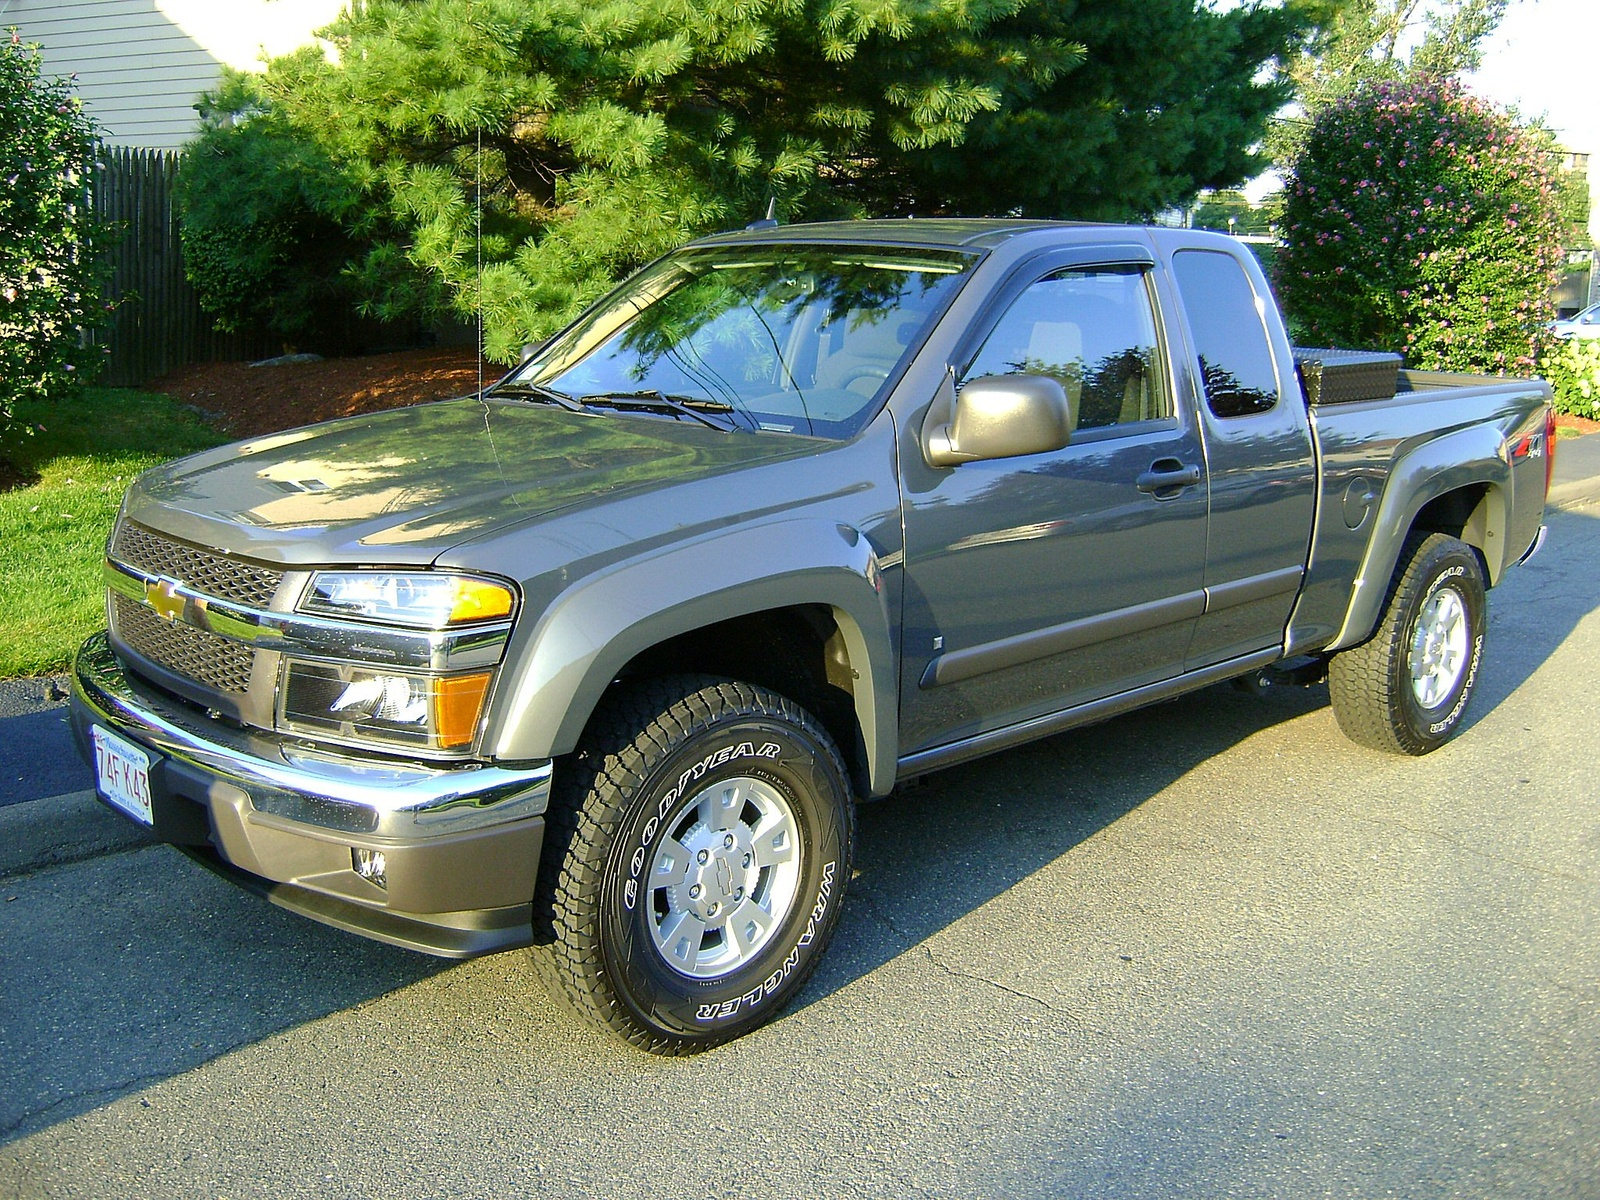 Picture of 2008 Chevrolet Colorado LT2 Ext. Cab 4WD